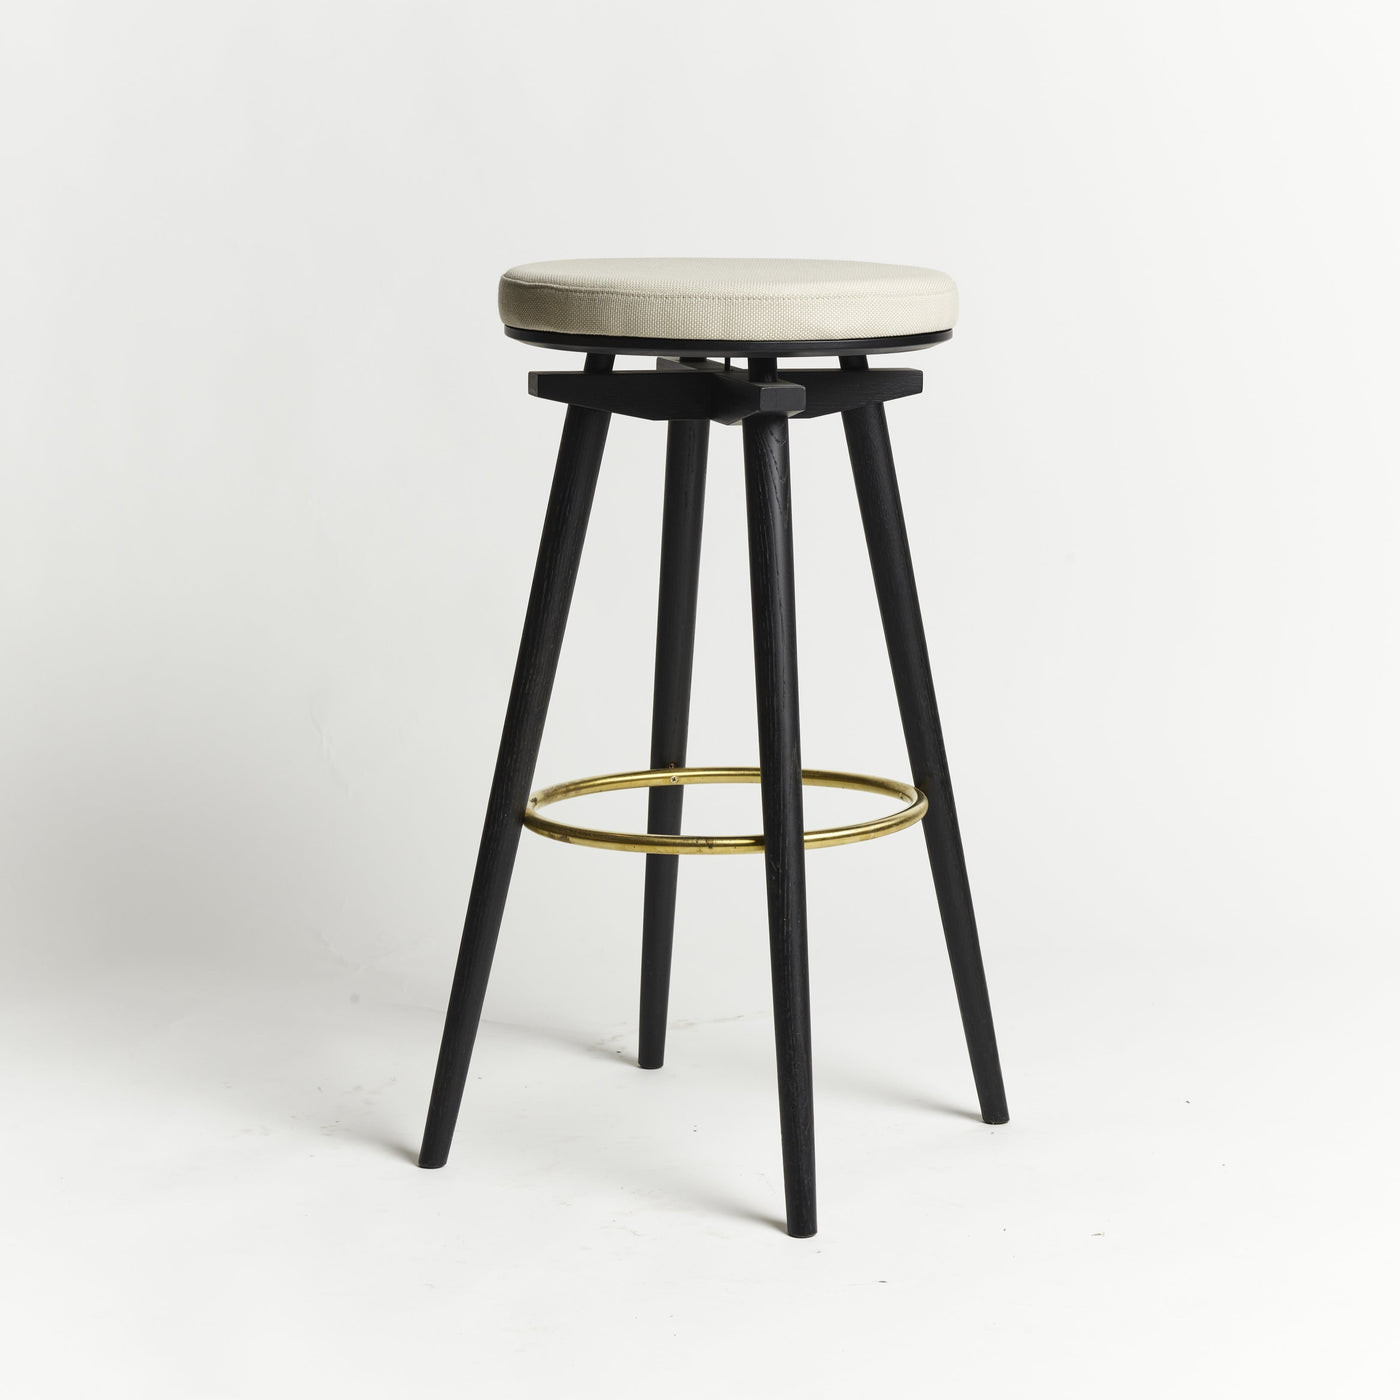 CC Barstool black oak brass ring upholstered seat Rohi textile snow - seating height 75 cm